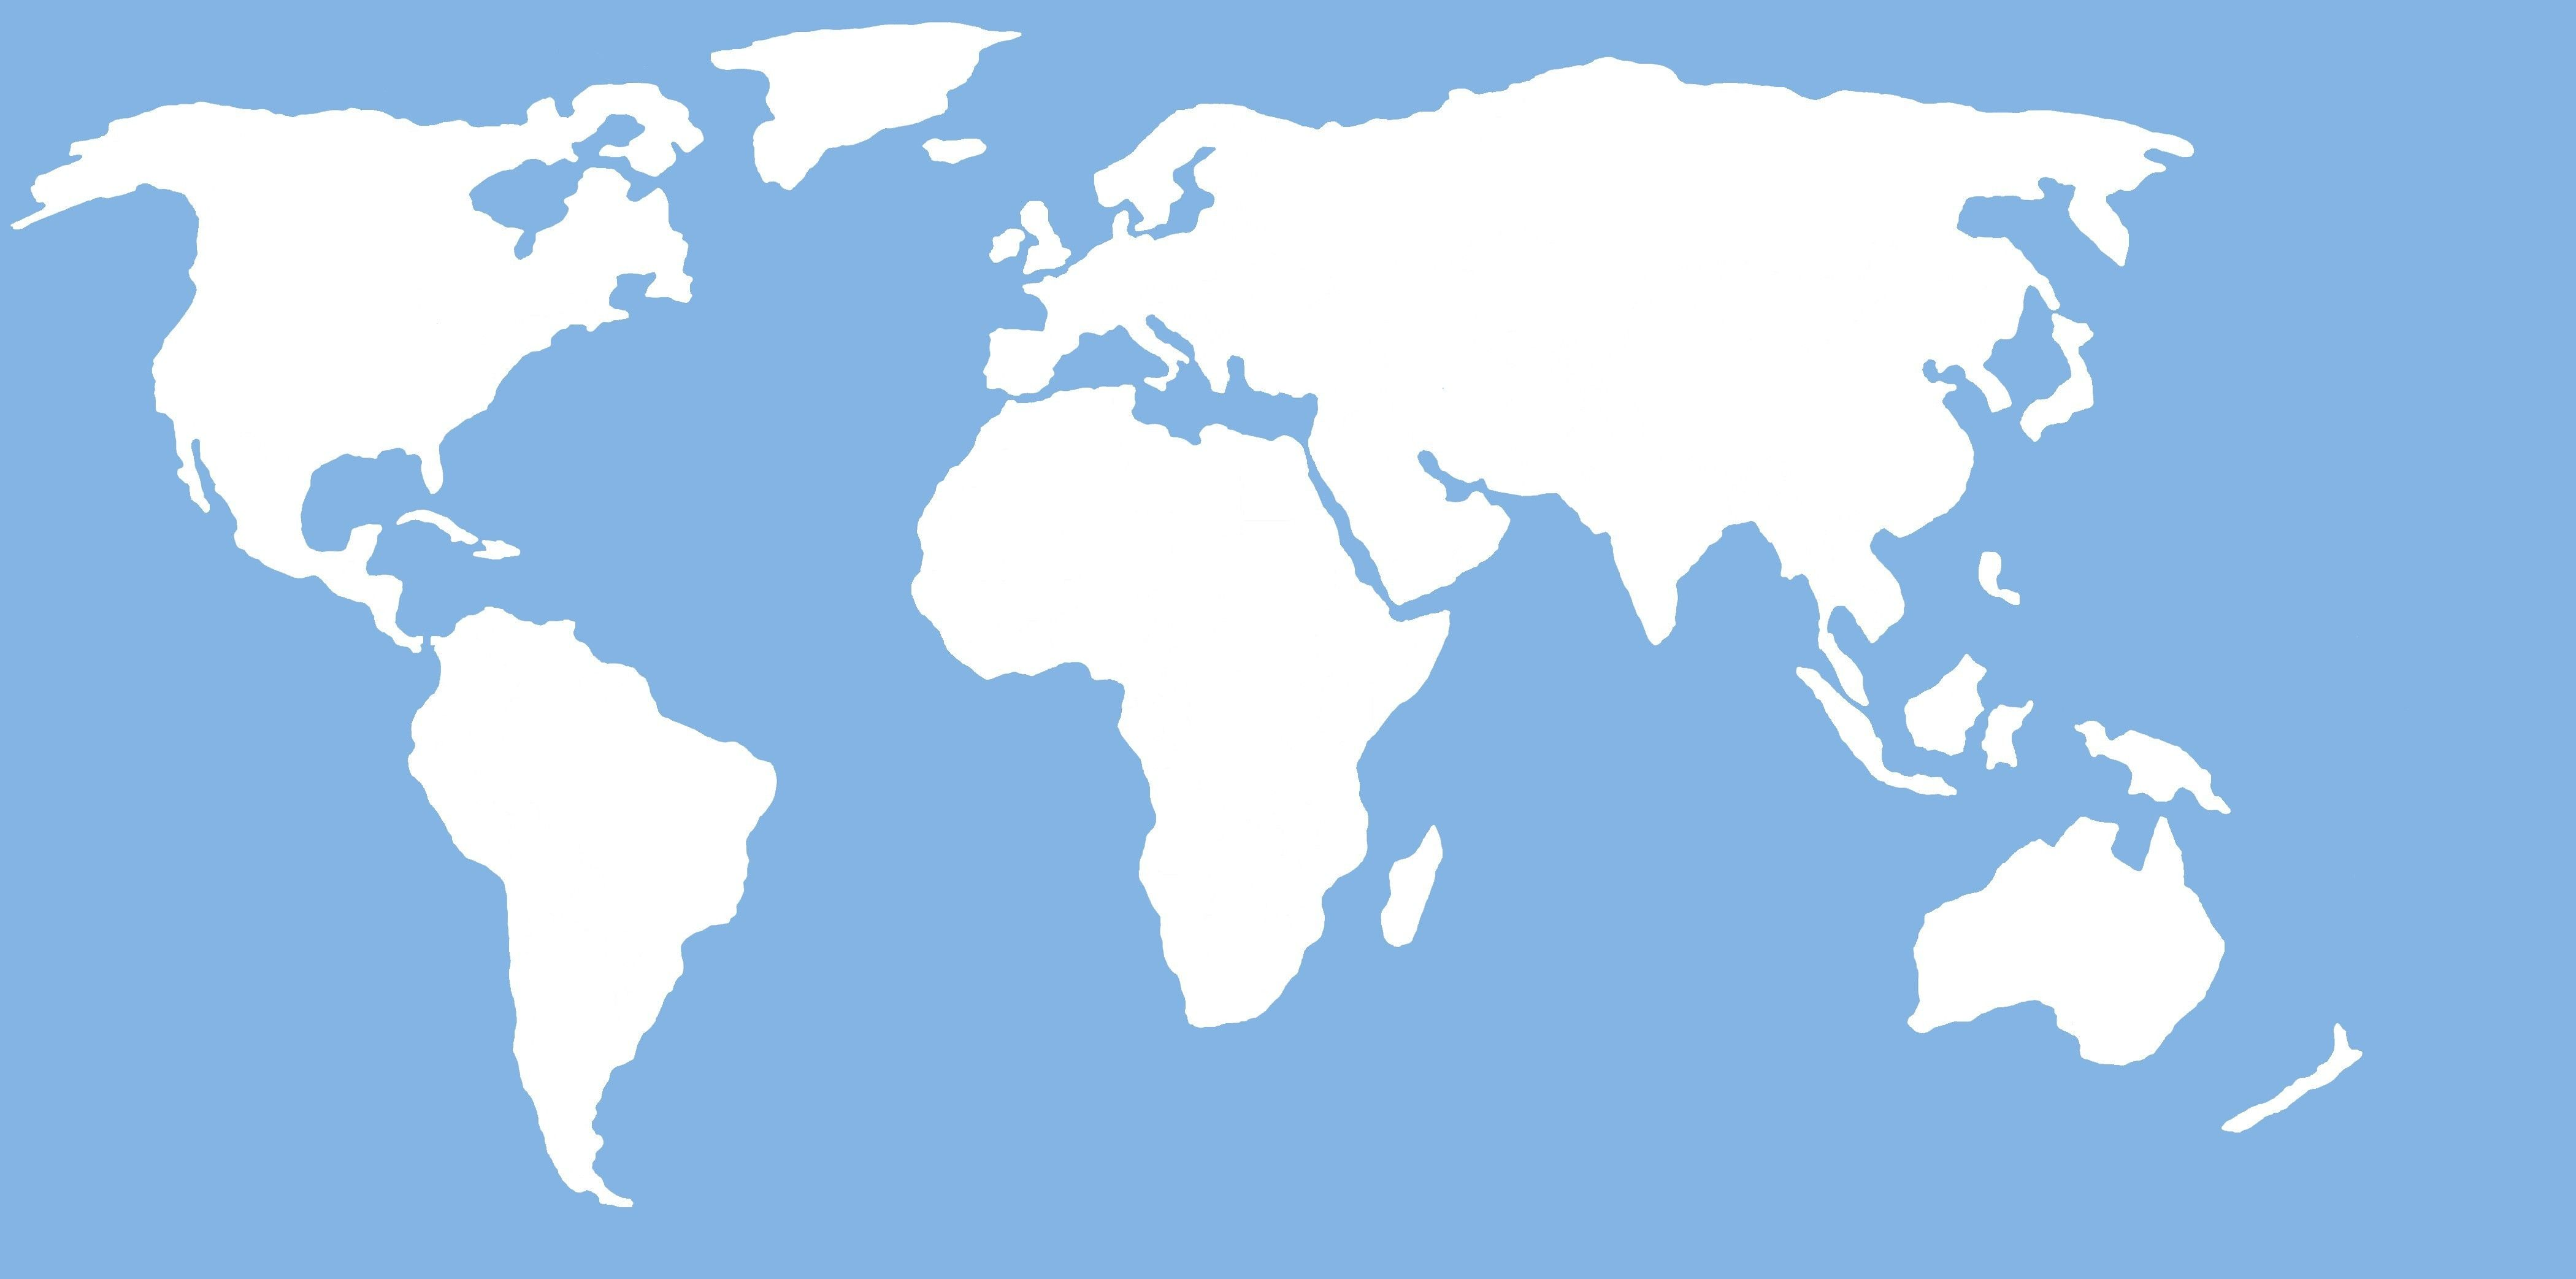 Flat World Map Continents Refrence Simple World Map Flat